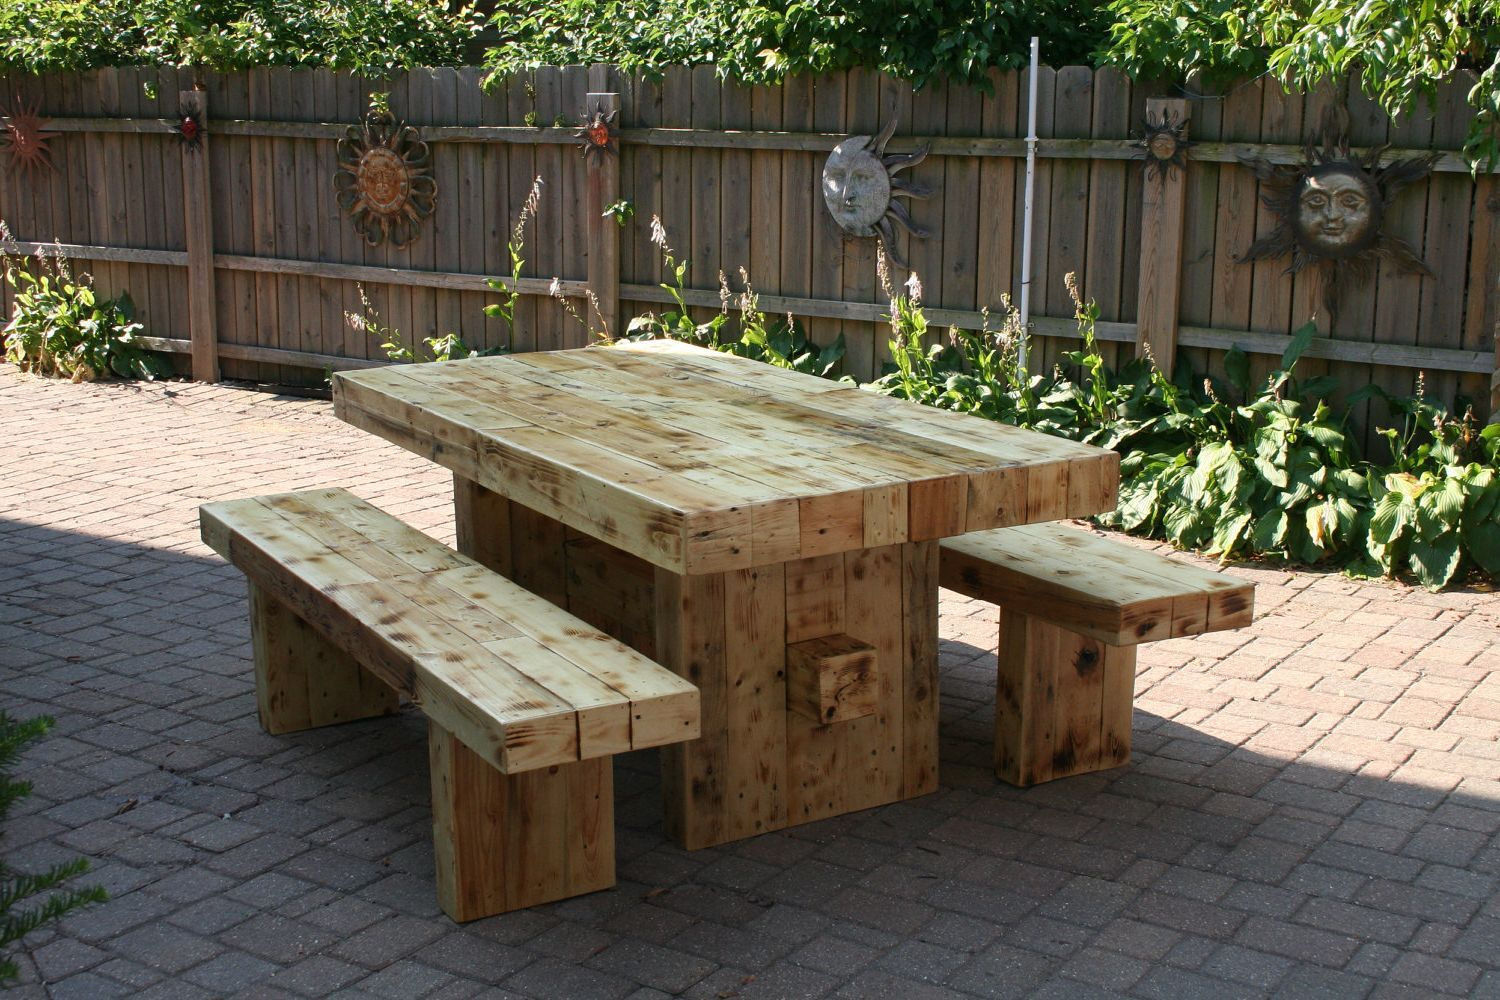 Delightful Wooden Garden Seat With Table Part - 6: Garden-and-patio-large-and-long-diy-rustic-solid-wood-picnic-table-with -detached-bench-seat-made-from-reclaimed-wood-ideas-picnic-bench -picnic-bencu2026